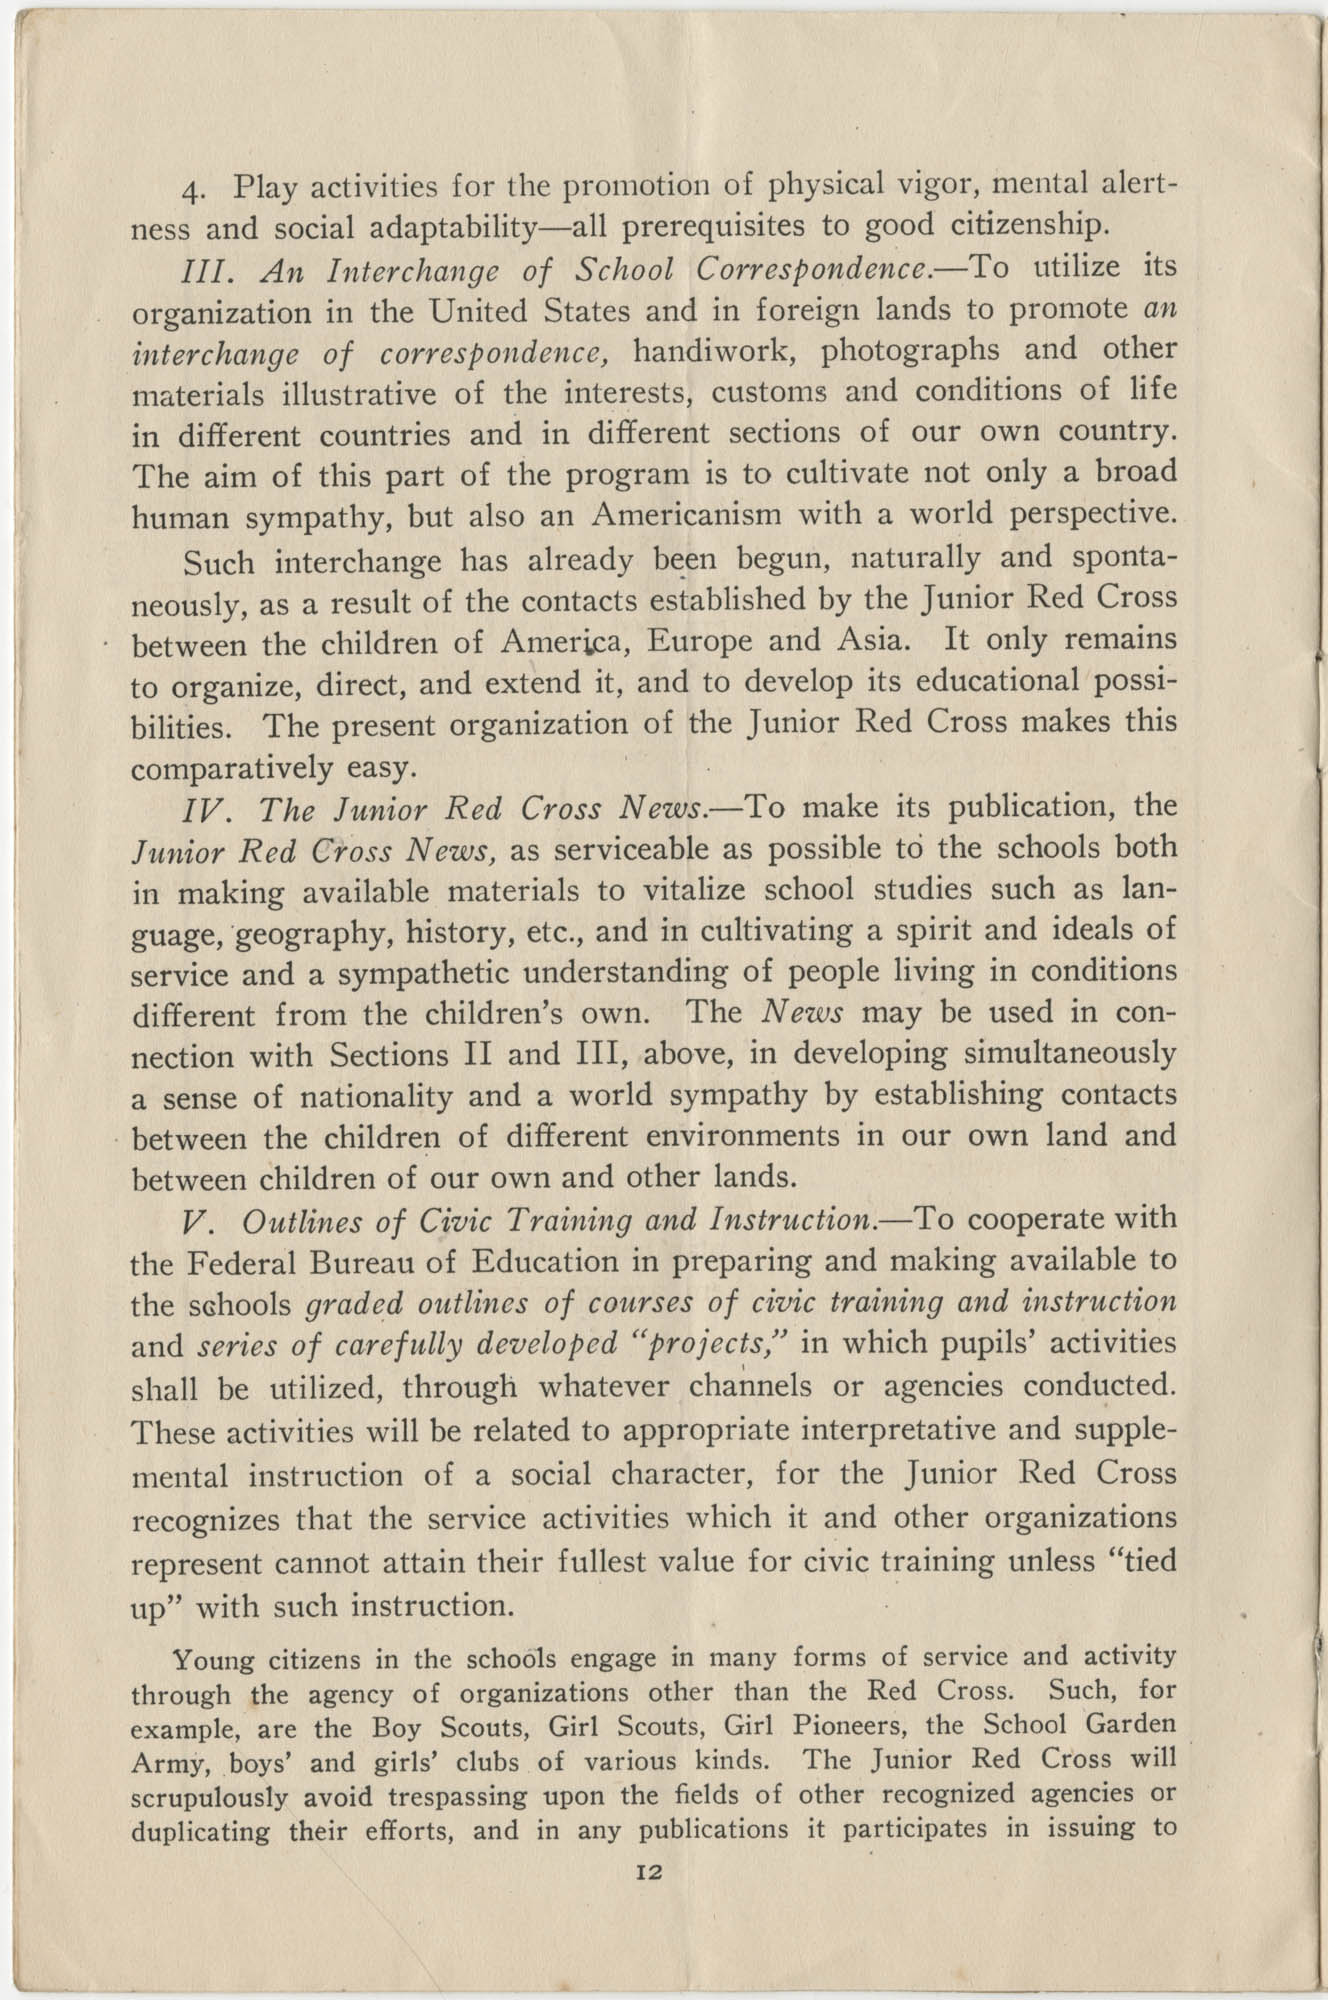 Civic Training Through Service, Department of the Interior, Bureau of Education, June 1920, Page 12